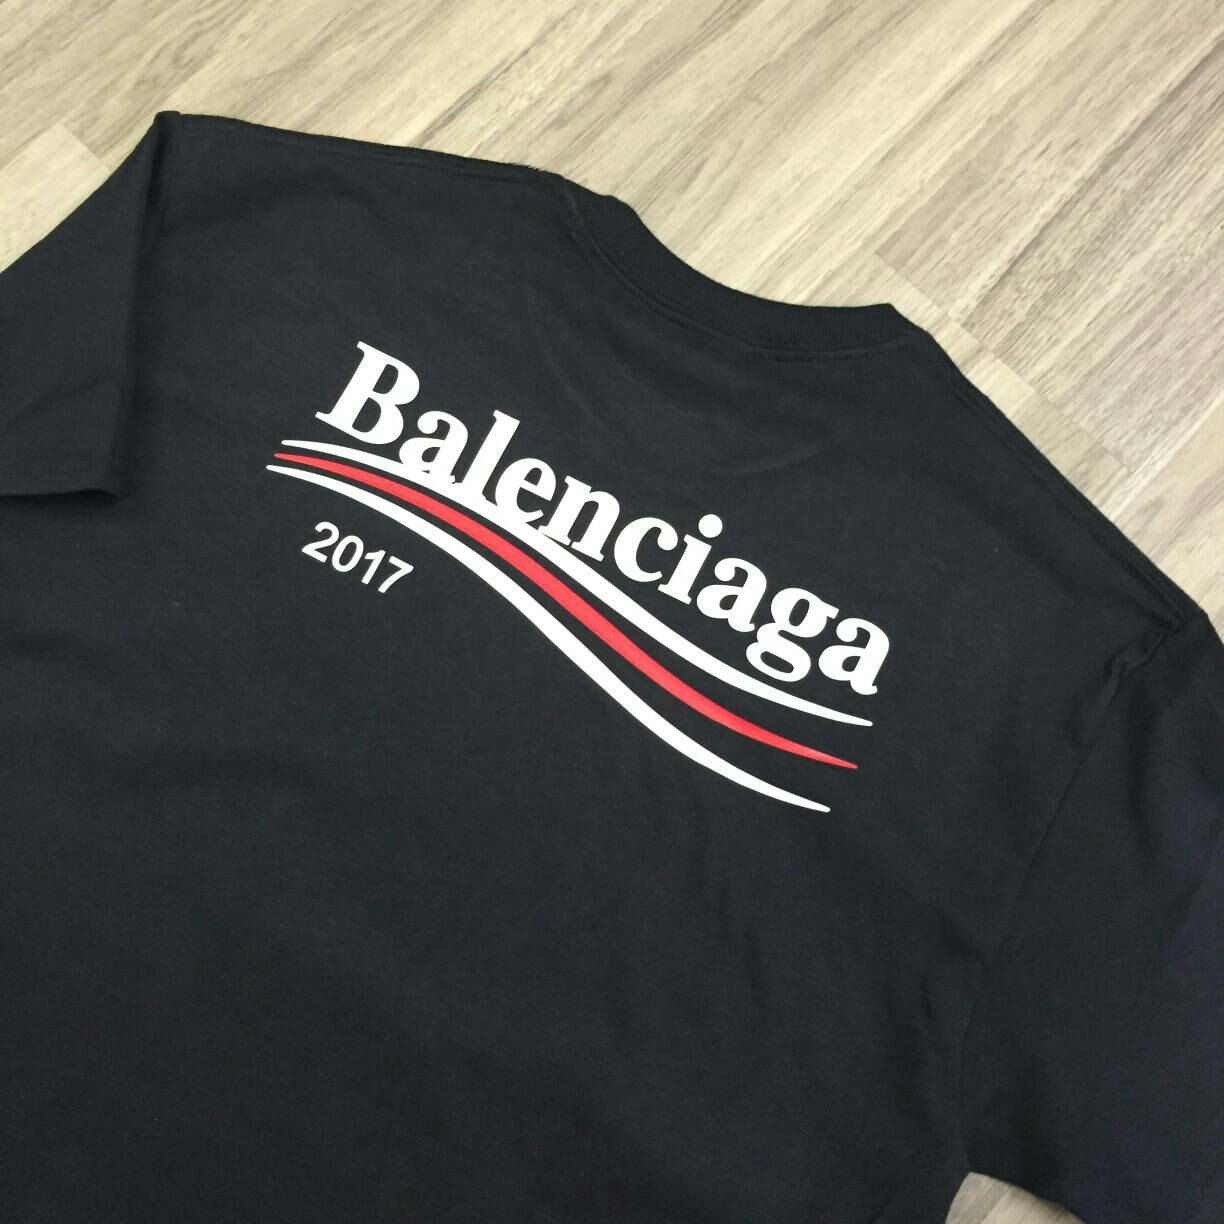 dc5d7d3c The back print on the Balenciaga Campaign tee. Coming soon in Navy and Red!  Keep it locked.